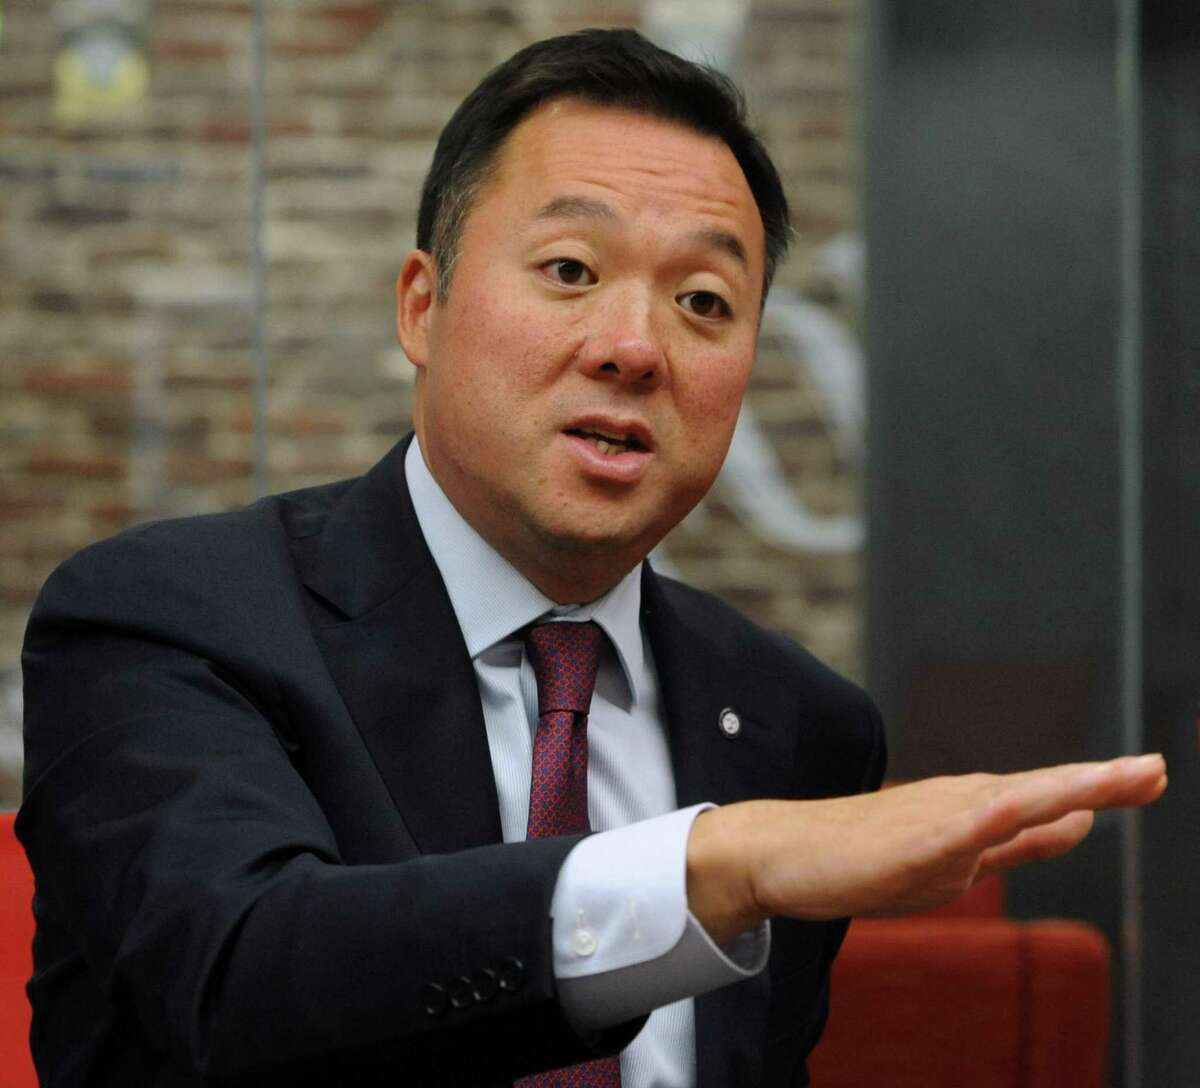 Connecticut Attorney General William Tong has filed a lawsuit against the generic drug industry with counterparts in 43 other states.